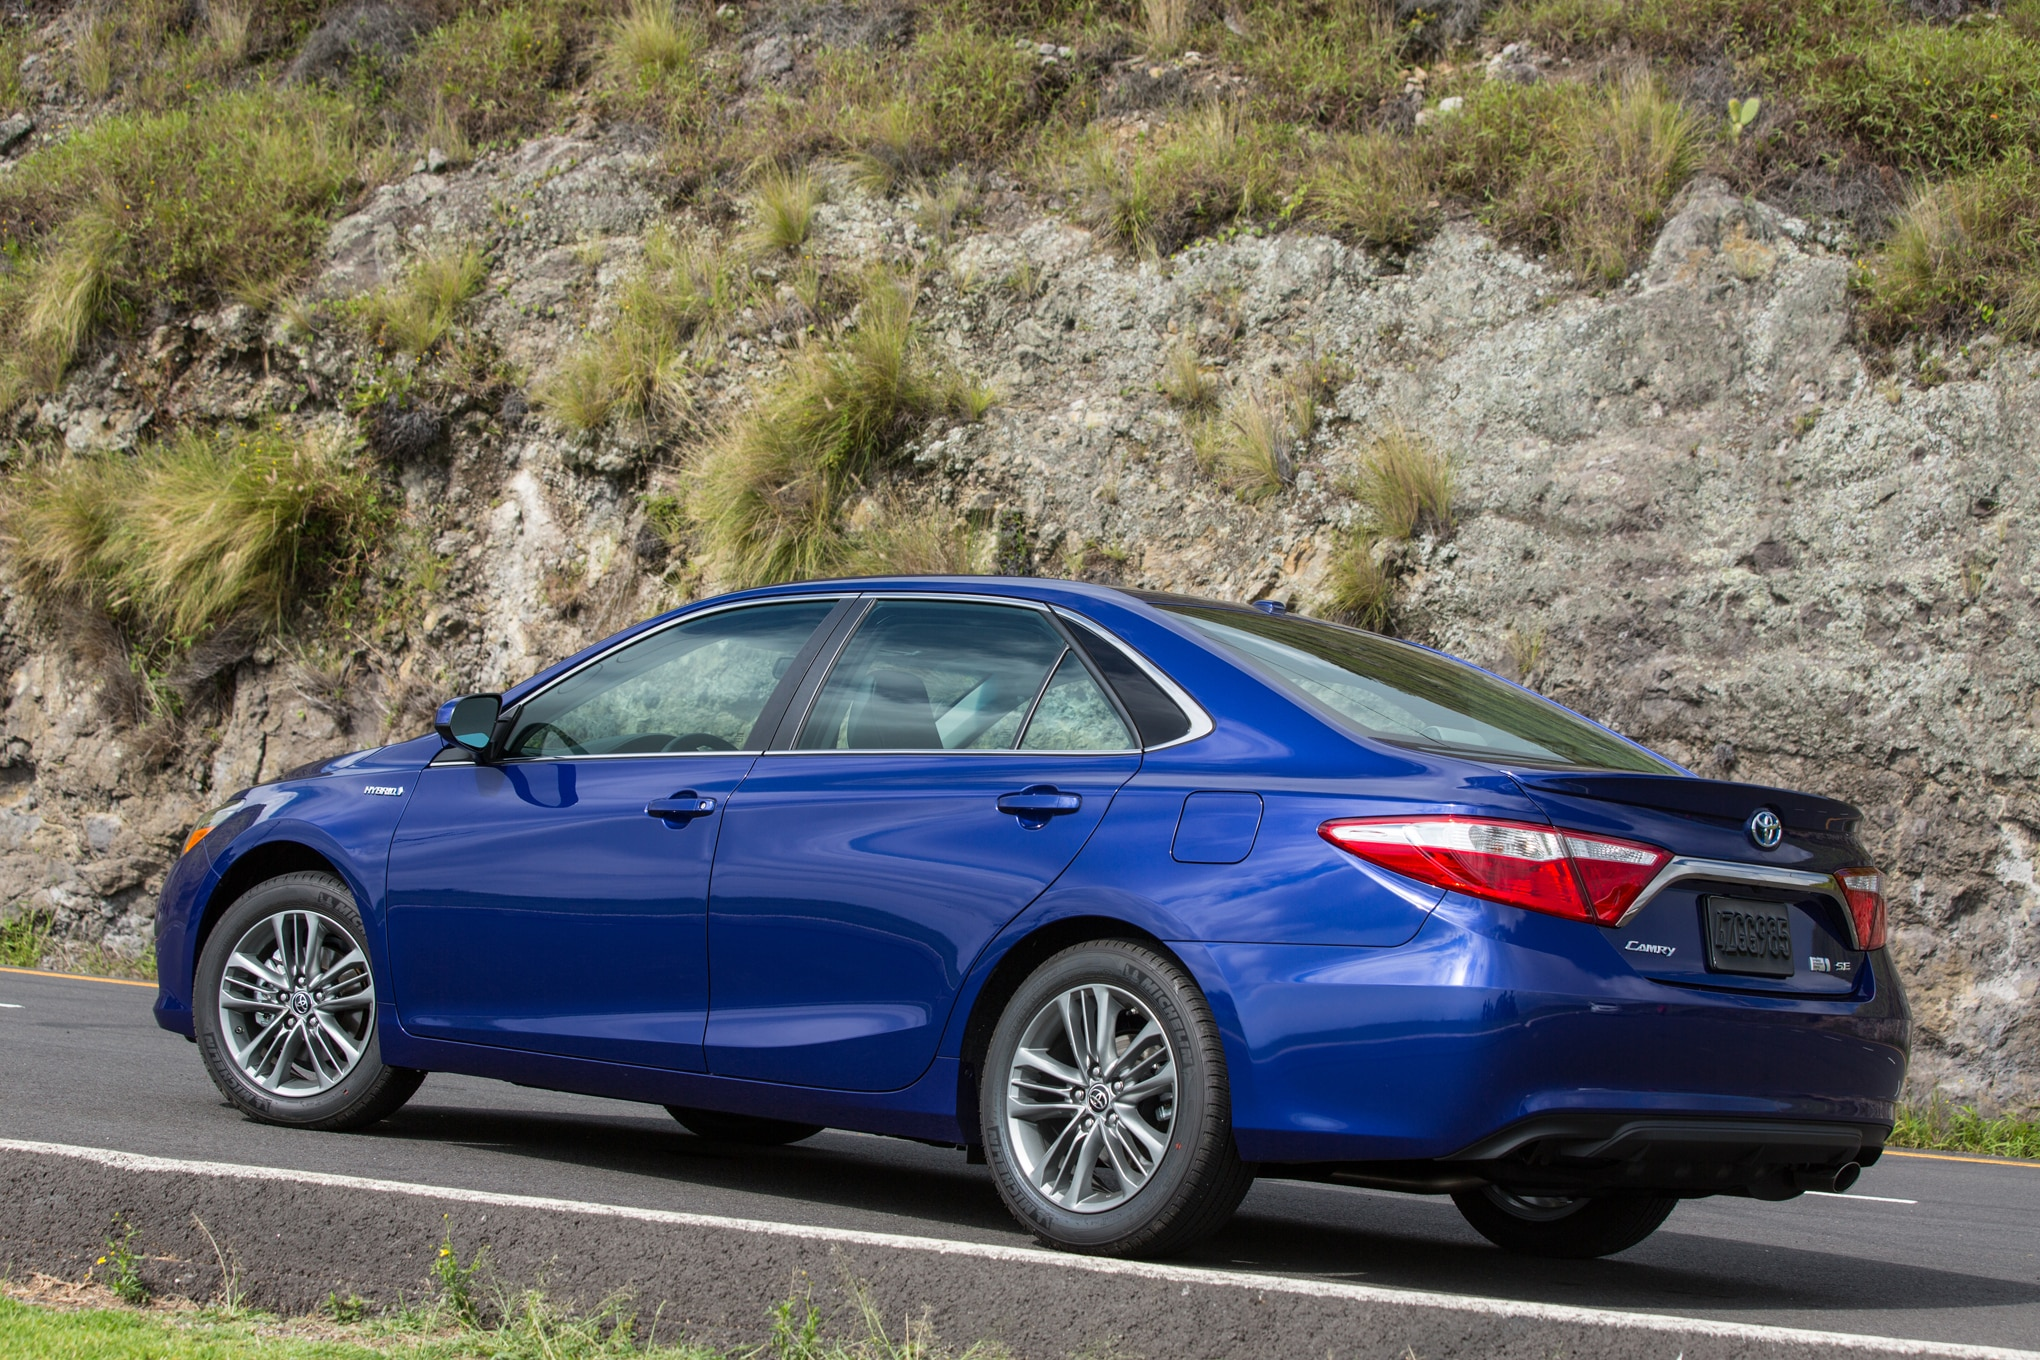 camry toyota hybrid se mpg vs rear prices competition real motortrend quarter three announces